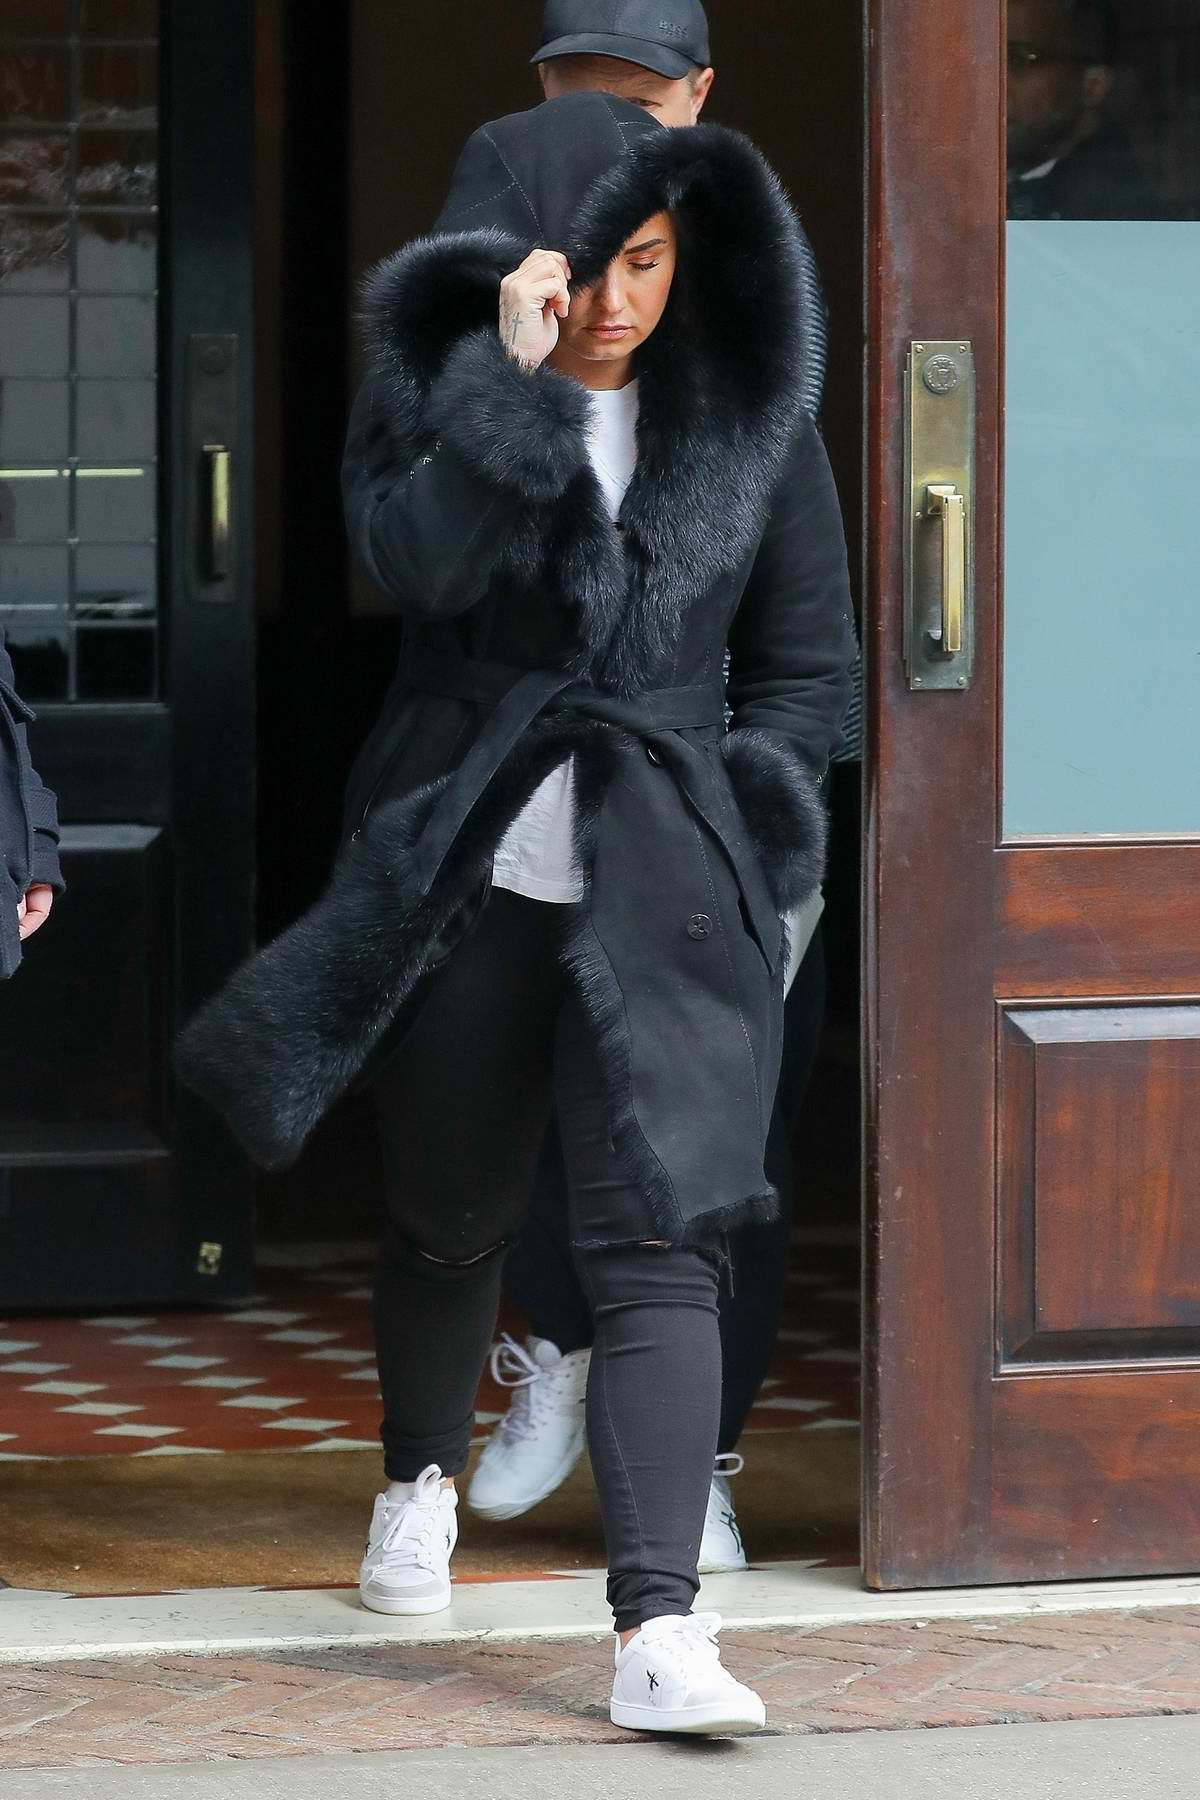 Demi Lovato wears a black fur lined coat as she leaves her hotel in New York City